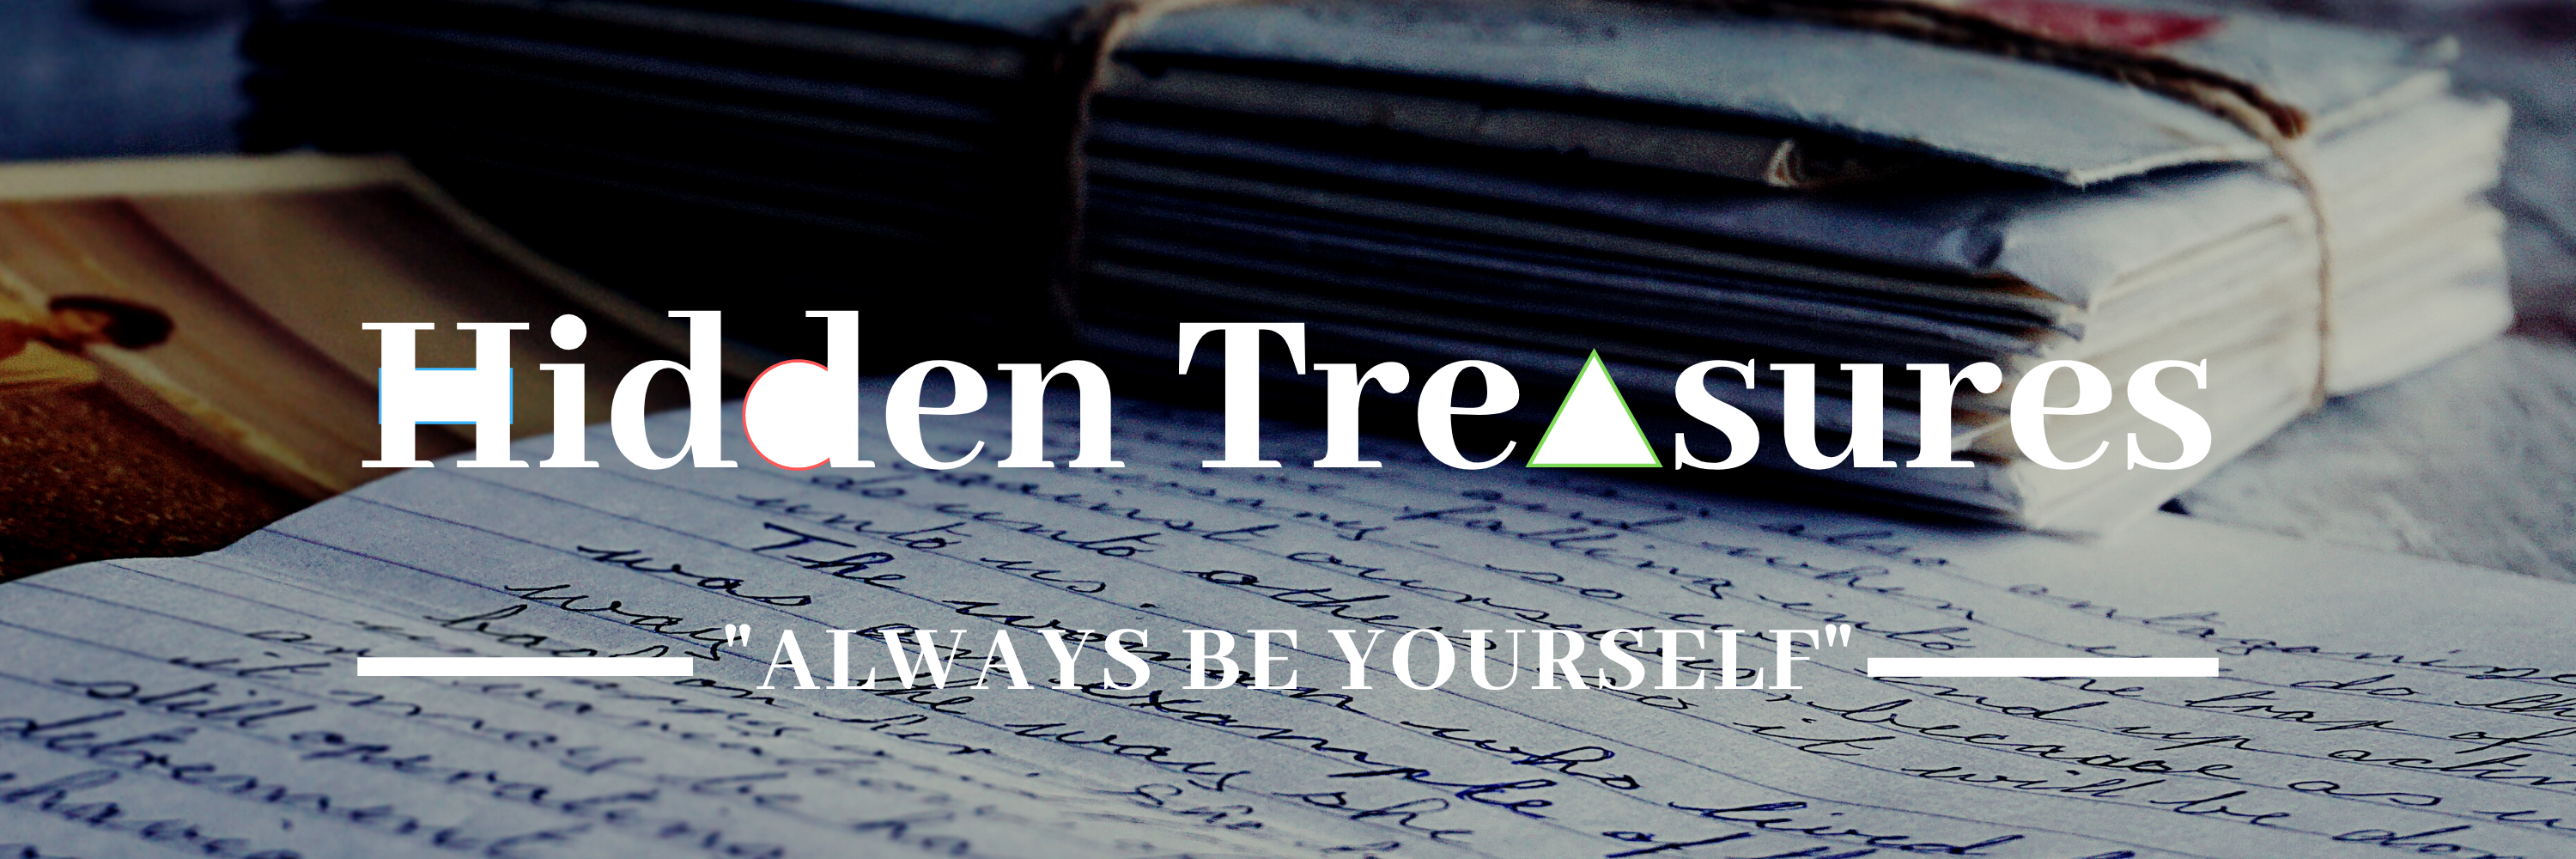 Hidden Treasures - Always Be Yourself